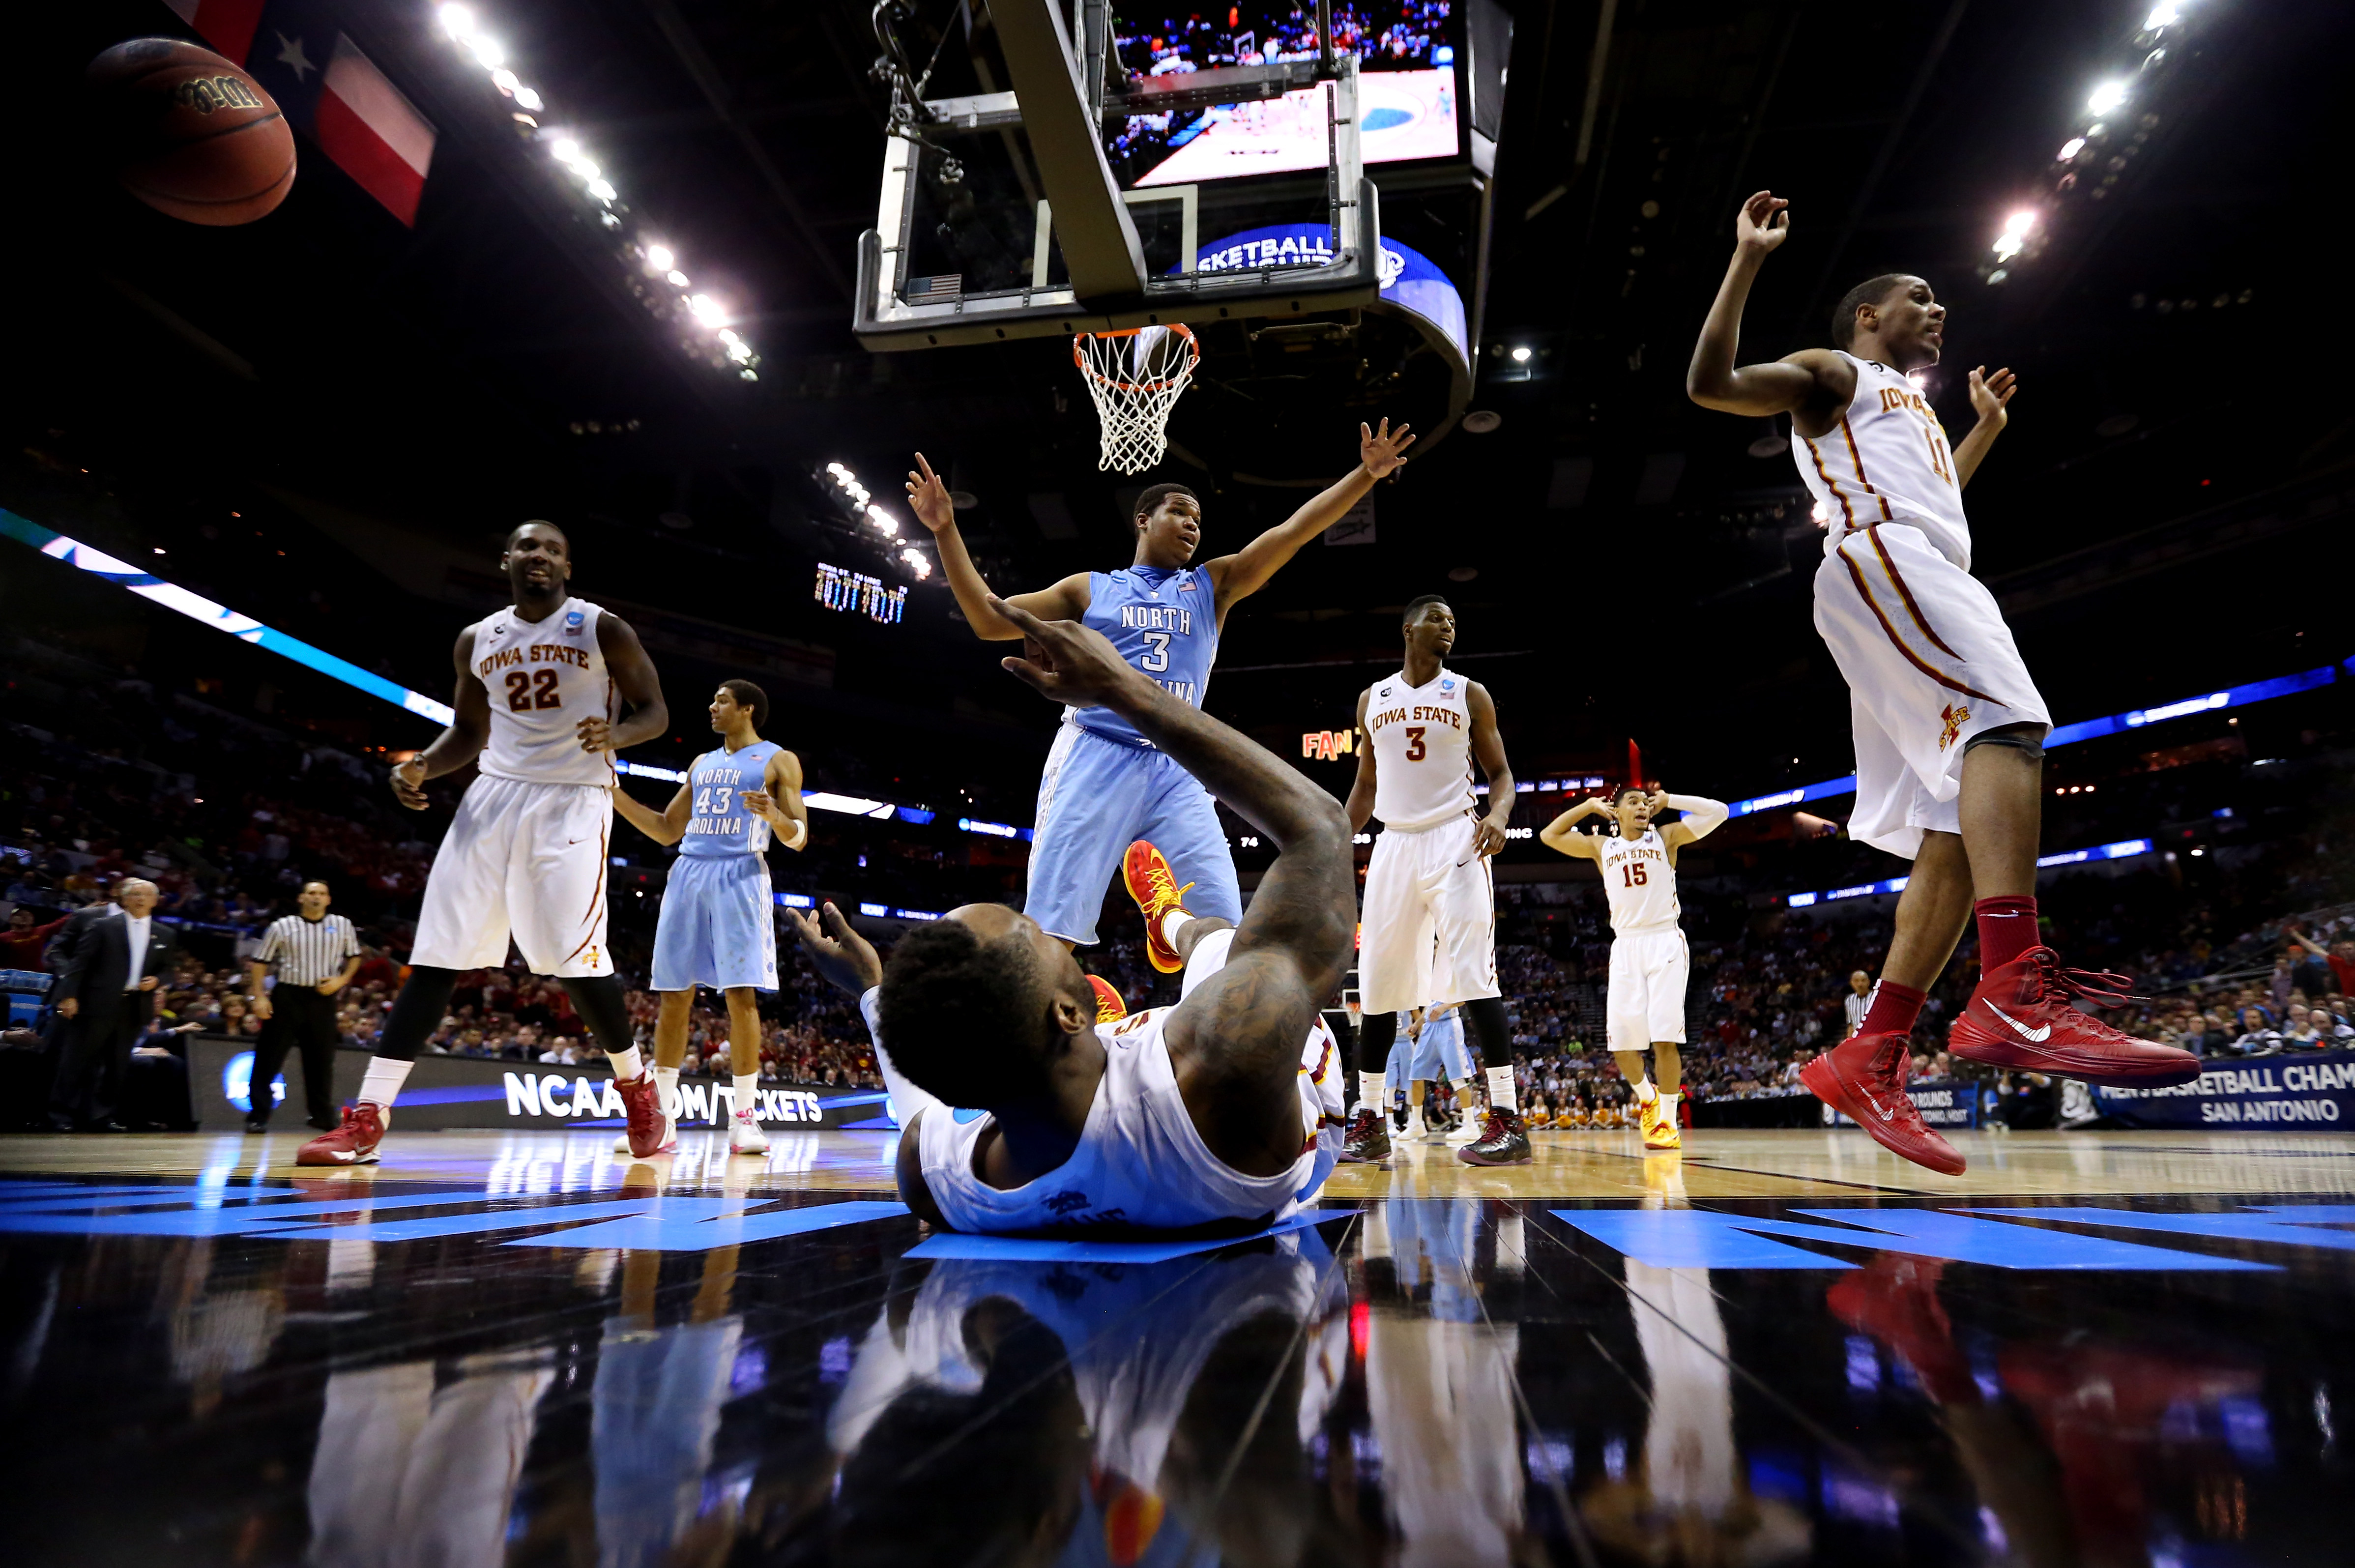 Kennedy Meeks of the North Carolina Tar Heels, center, reacts as DeAndre Kane of the Iowa State Cyclones falls underneath the basket at the AT&T Center in San Antonio on March 23, 2014